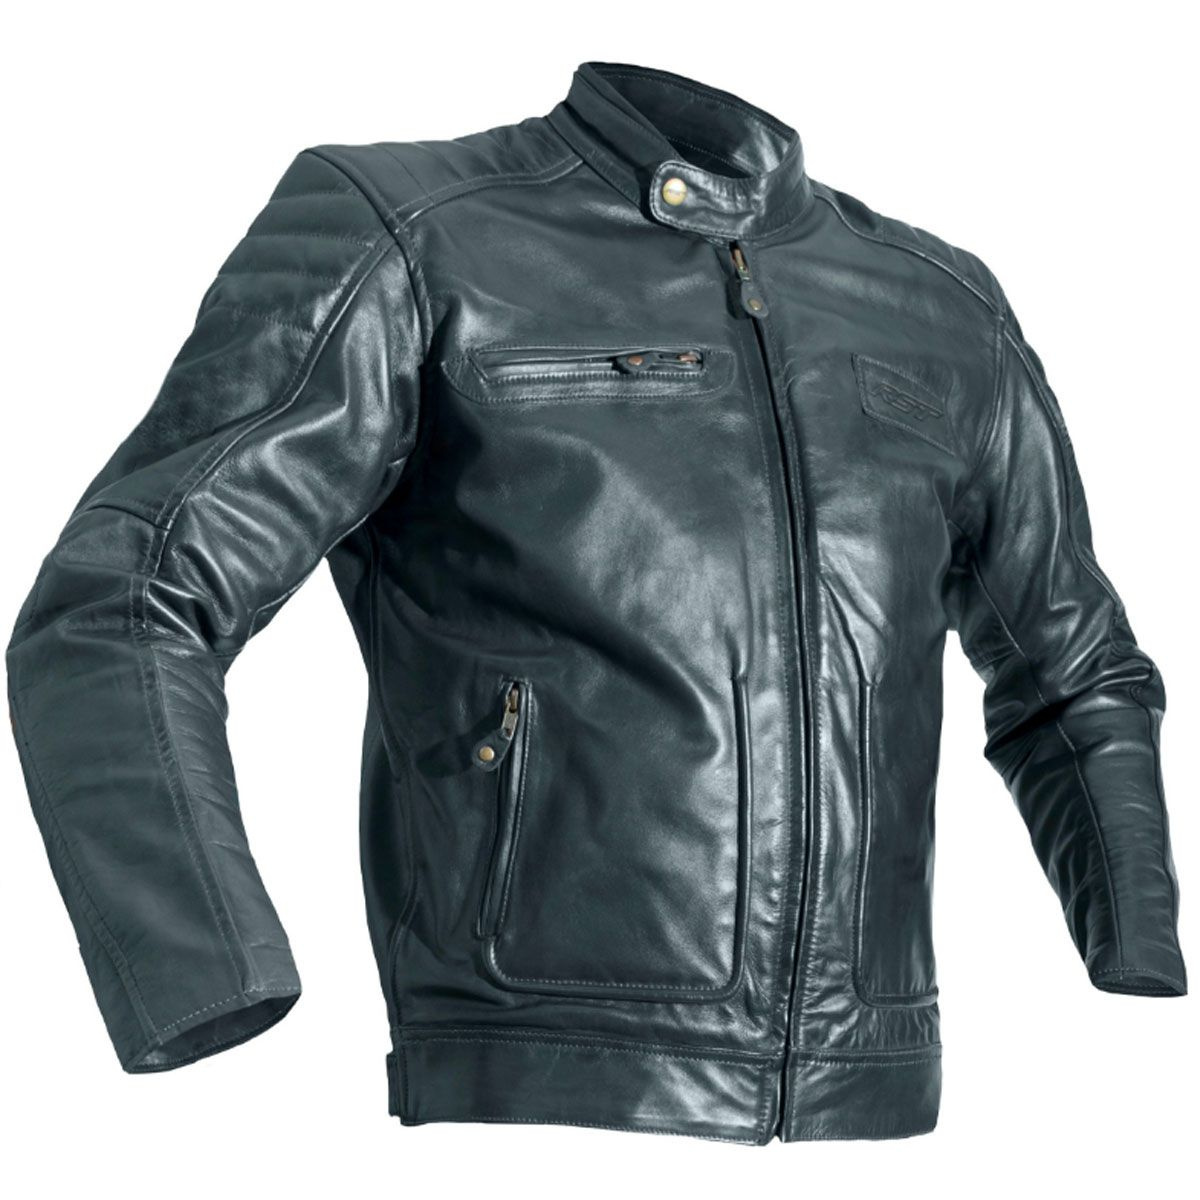 RST Roadster II CE Leather Jacket Vintage Black